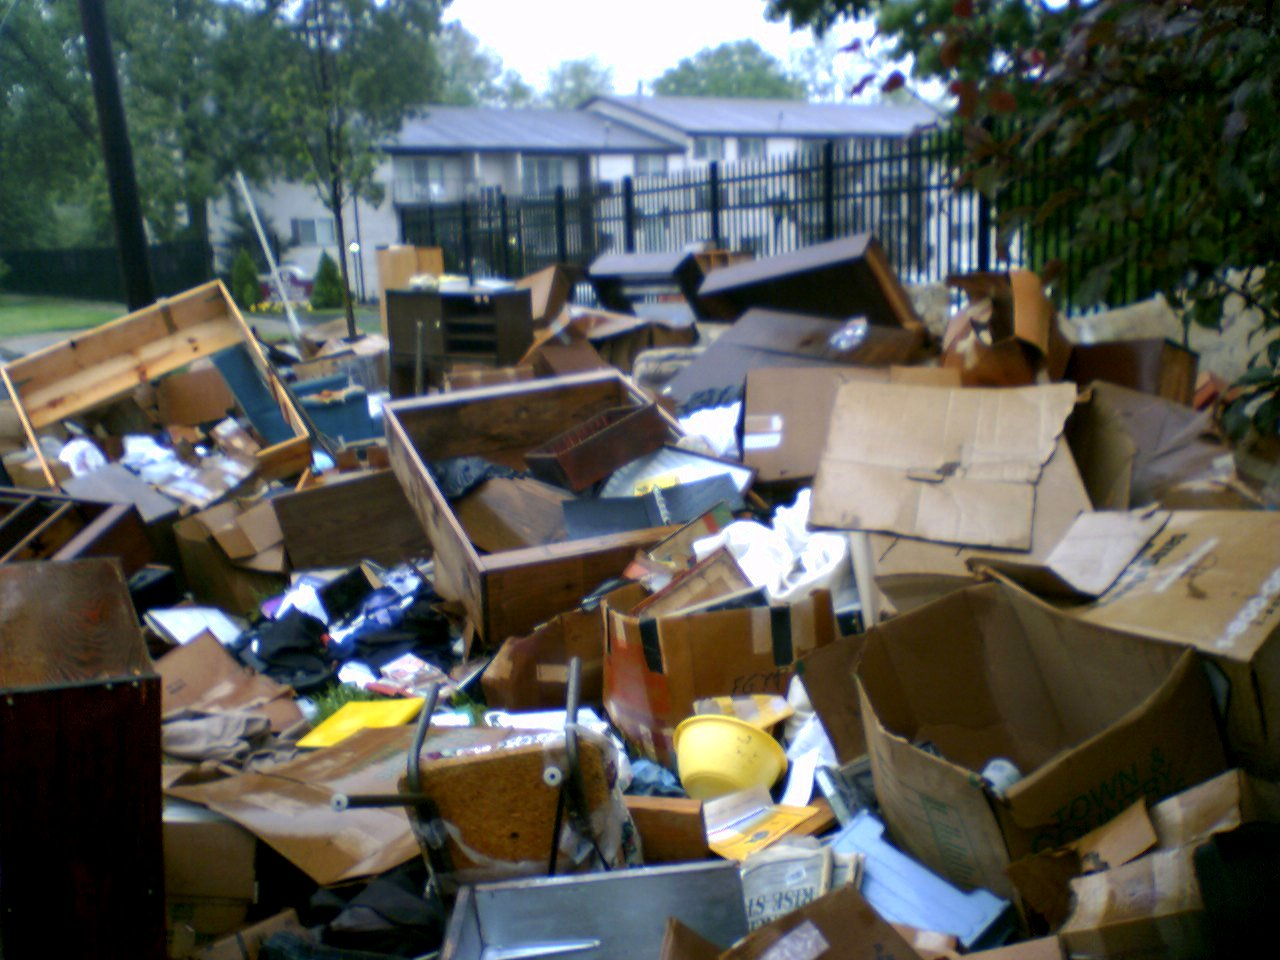 furniture pile in the morning - The Dump Furniture Store